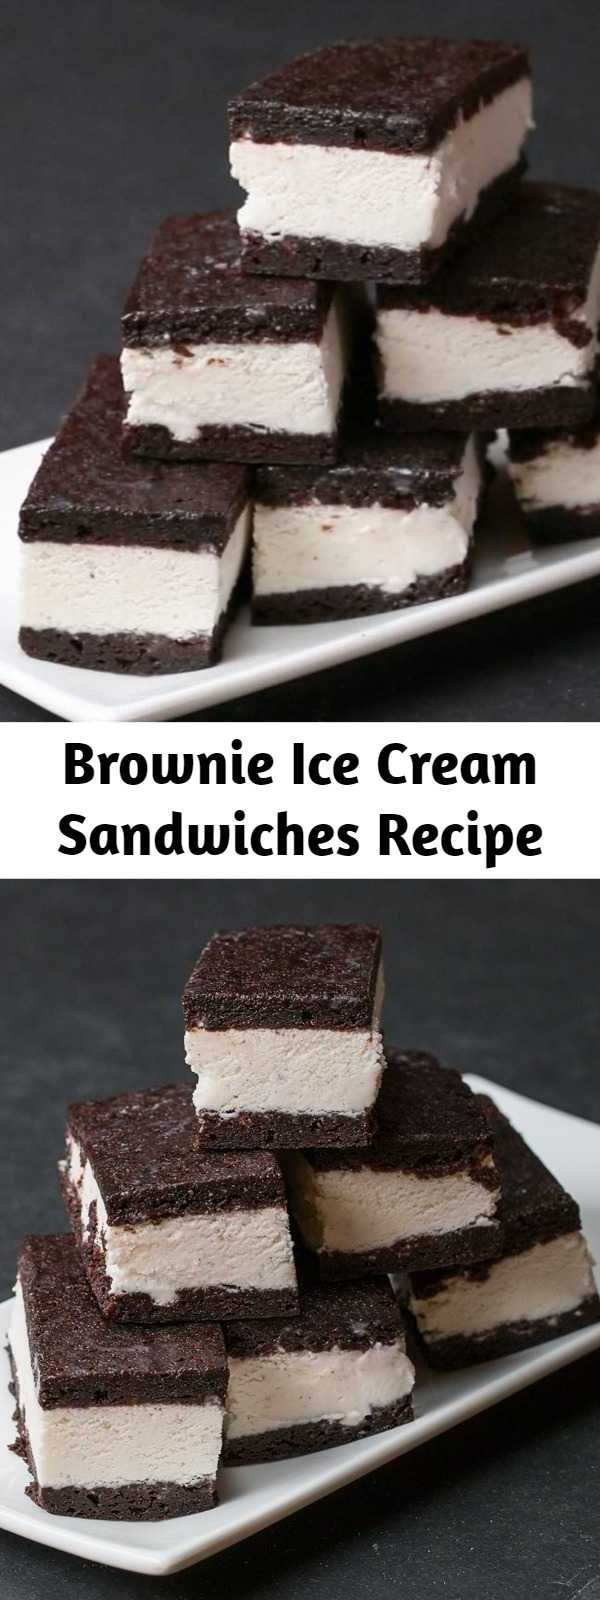 Brownie Ice Cream Sandwiches Recipe - Delicious brownie ice cream sandwiches that can be ready and waiting in the freezer.